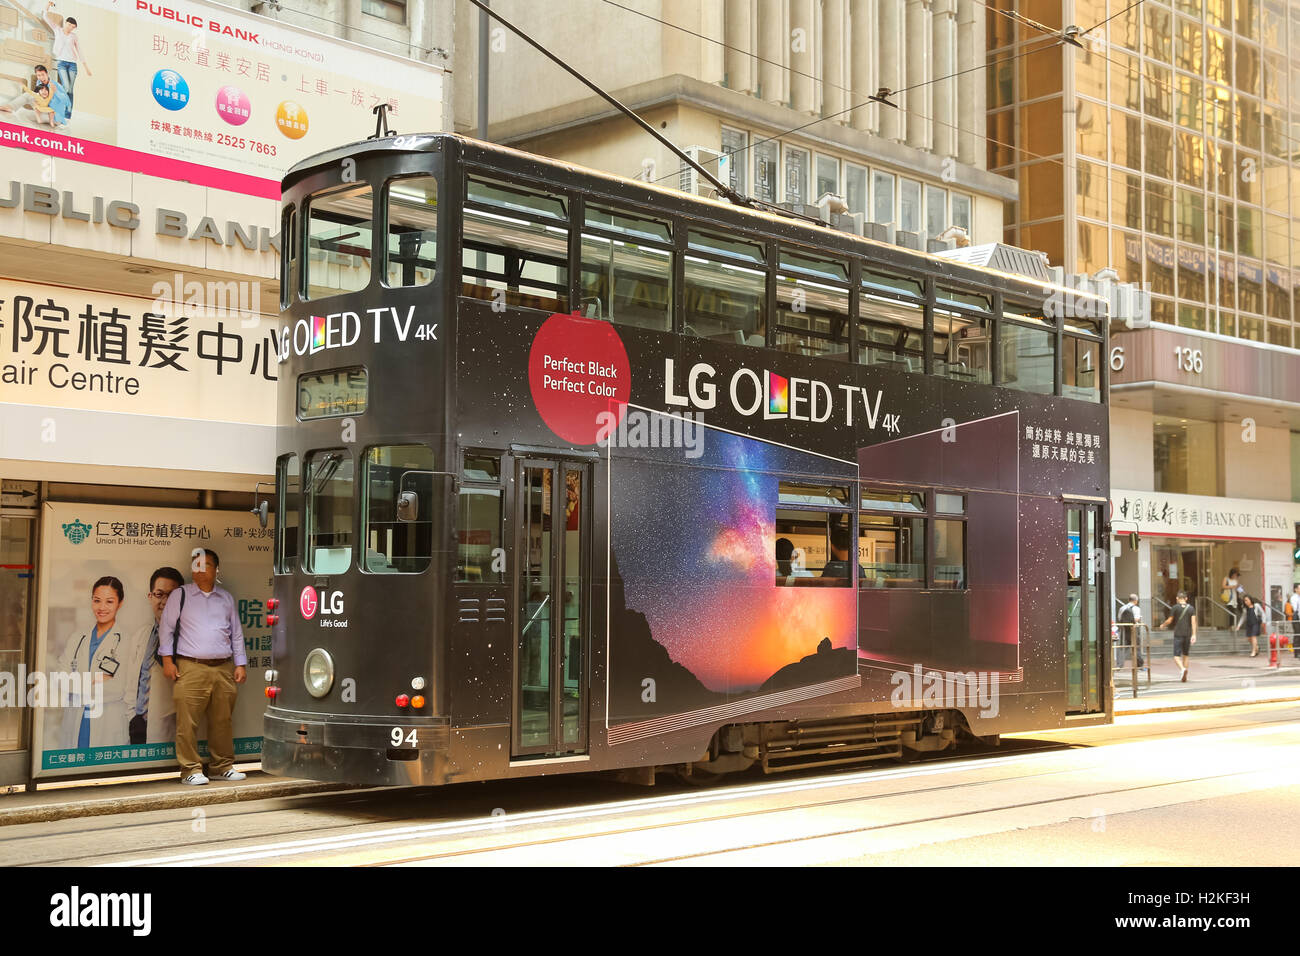 HONG KONG, HONG KONG - August 30, 2016: A streetcar or tram with advertizing in Hong Kong Central. - Stock Image